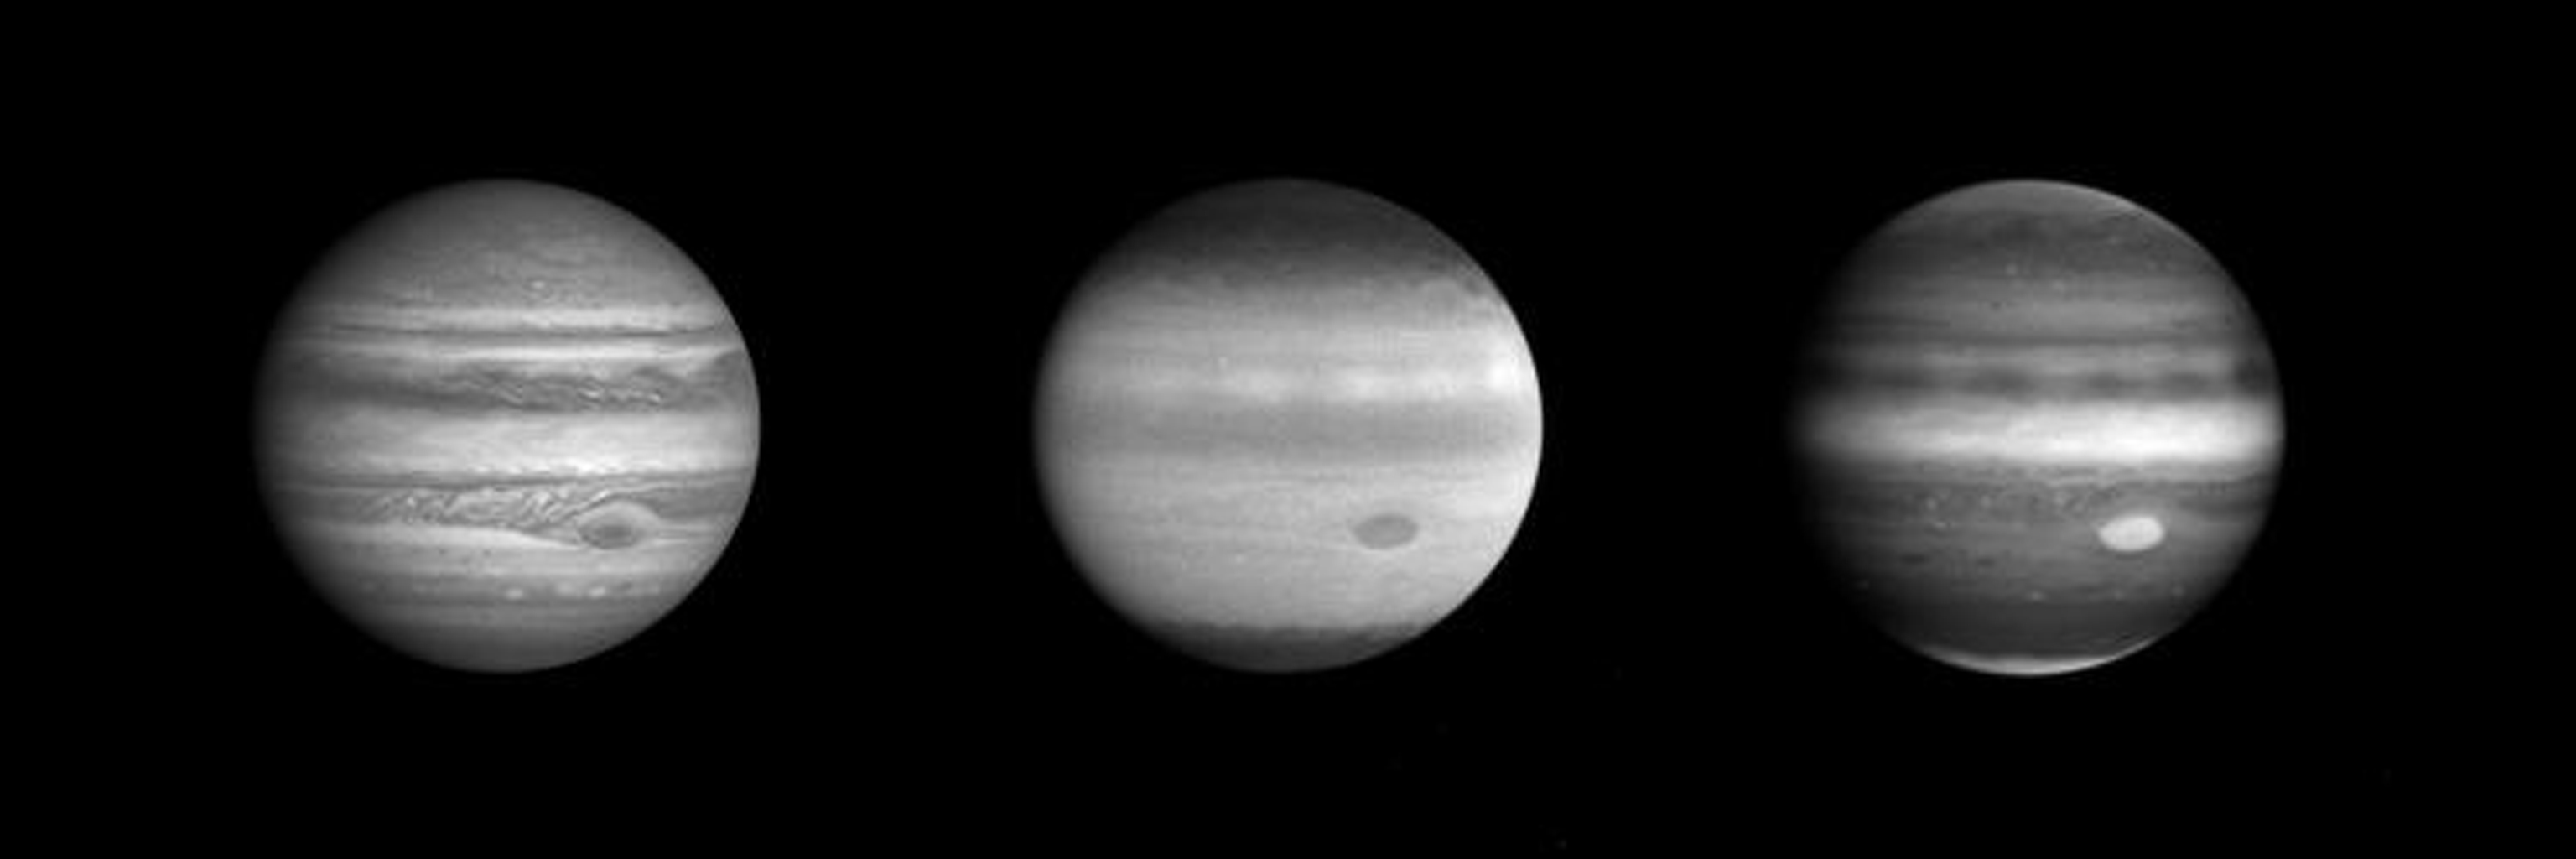 These three images of Jupiter, taken through the narrow angle camera of NASA's Cassini spacecraft from a distance of 77.6 million kilometers (48.2 million miles) on October 8, reveal more than is apparent to the naked eye through a telescope.